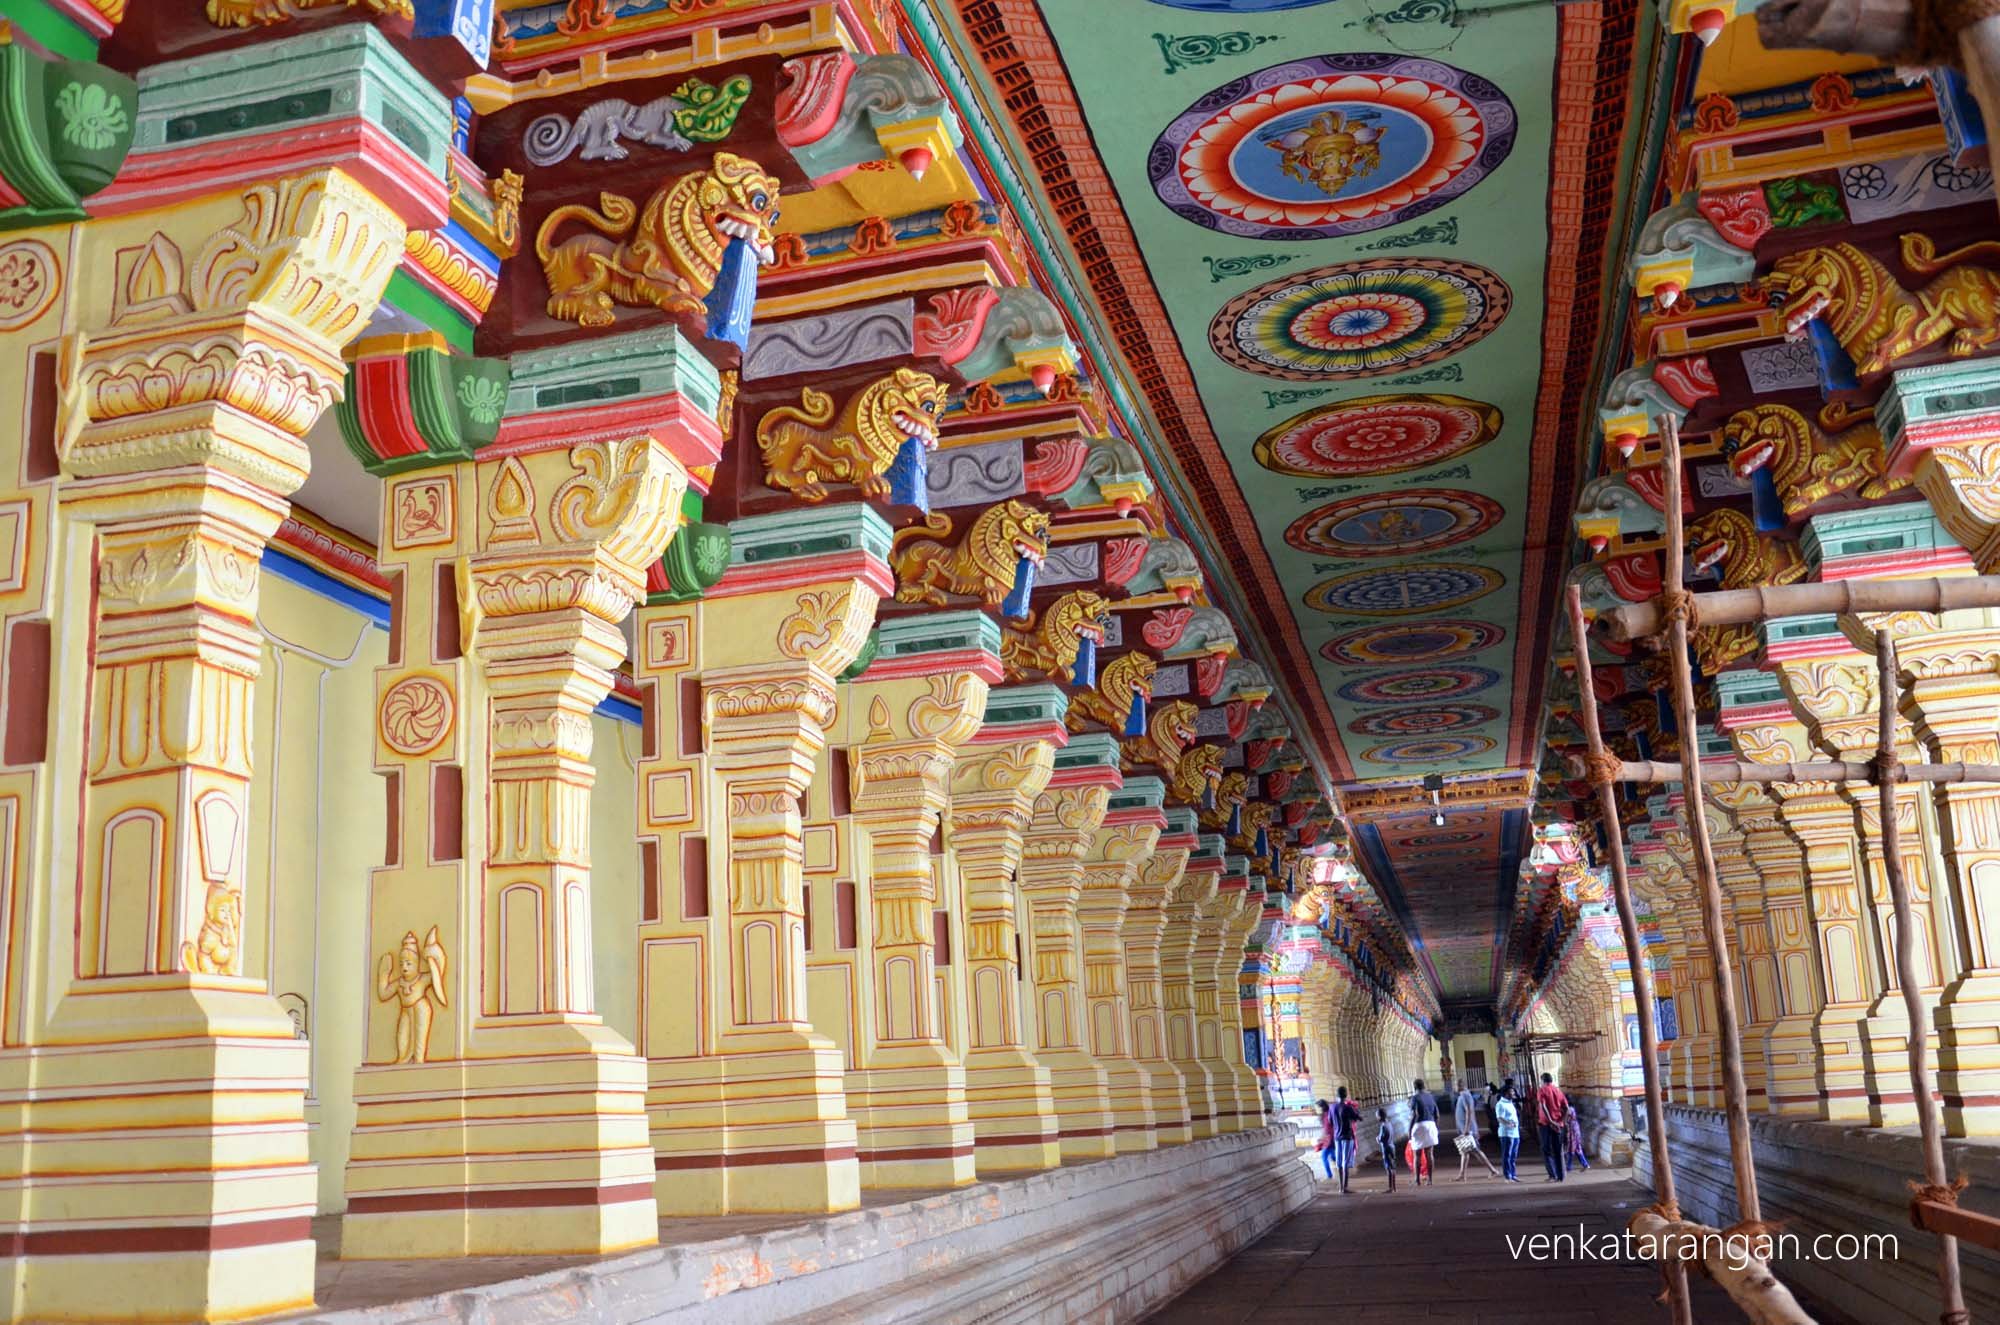 East-West Corridor is 649 feet long; North-South Corridor is 395 feet; Each Pillar is 22 feet in height. Overall 1212 Pillars are at Ramanathaswamy Temple, Rameswaram